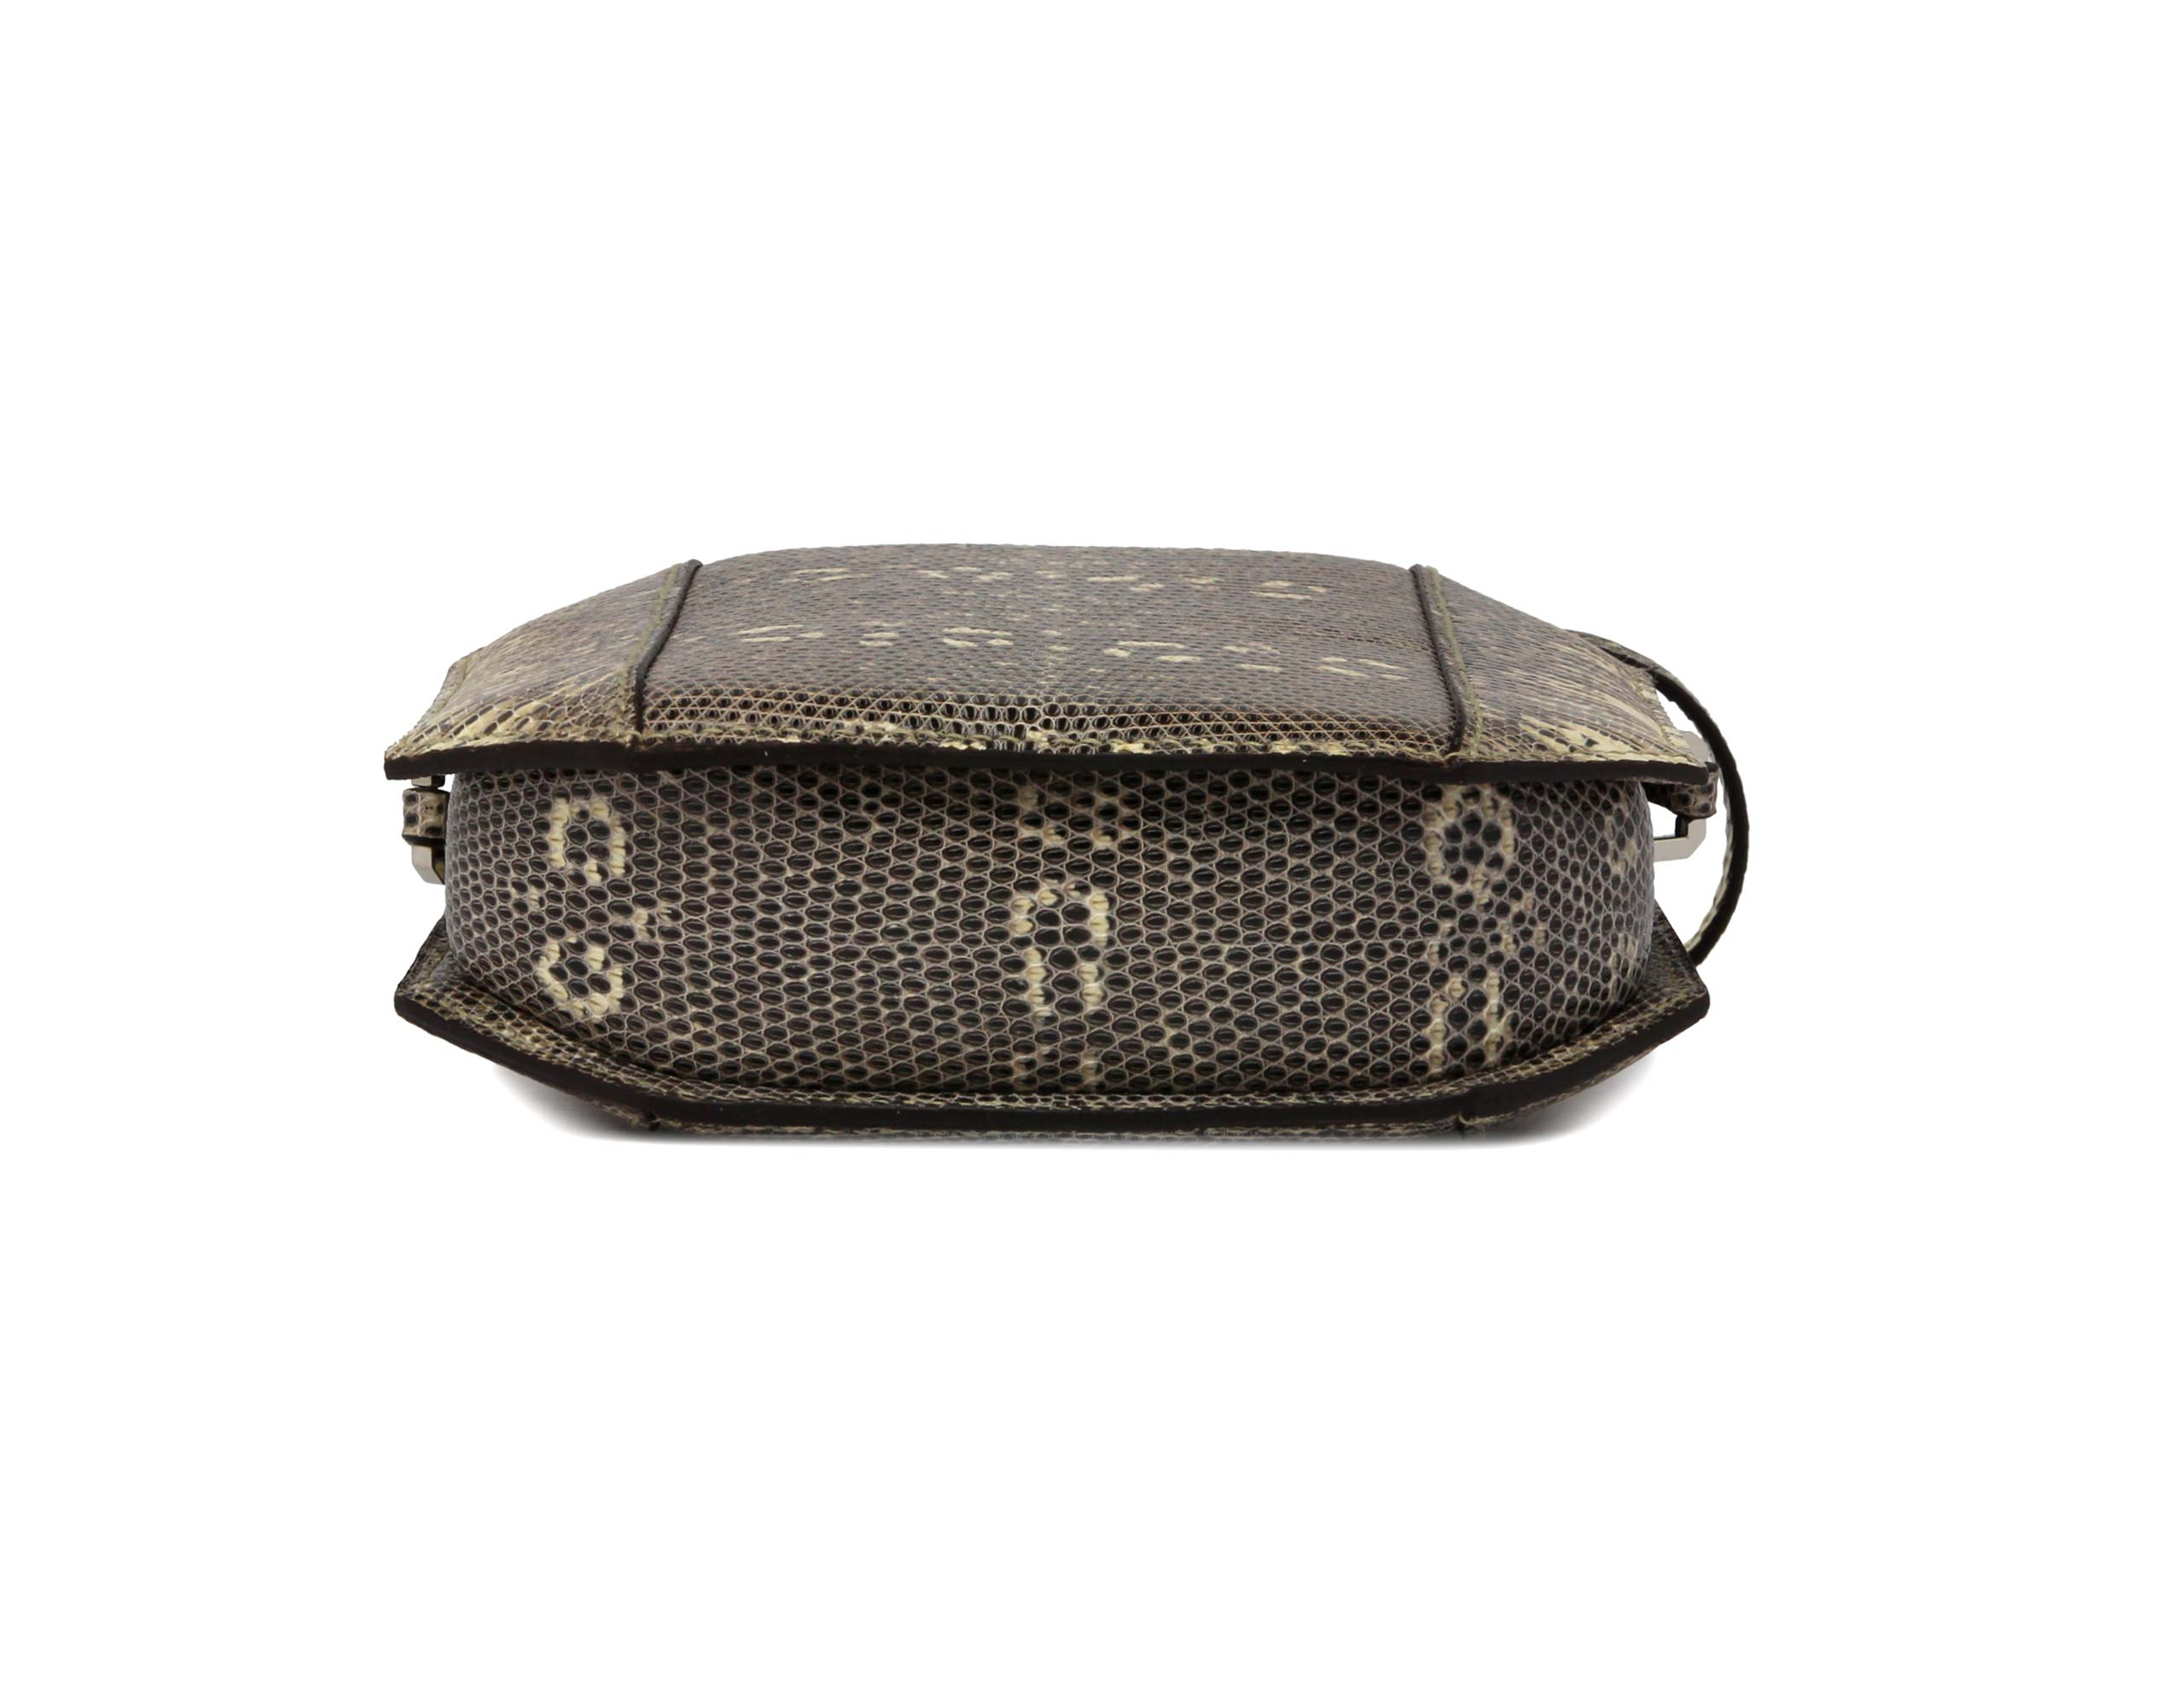 hermes-sac-a-poudrier-ombre-lizard-phw-sp002-LG02